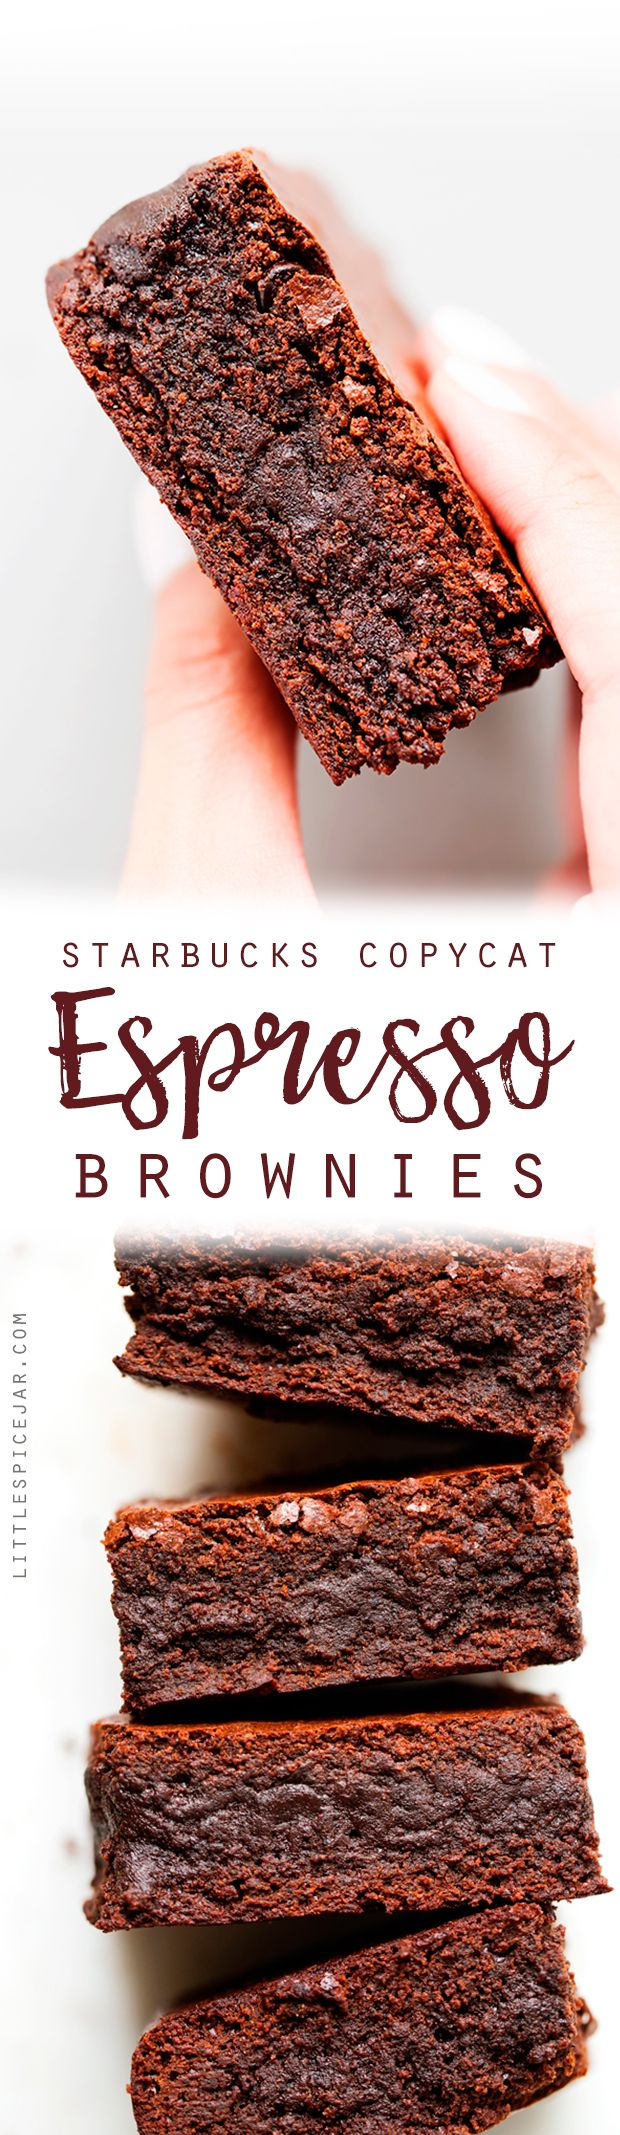 Starbucks Copycat Espresso Brownies - made with real ground espresso beans! These brownies are sooo